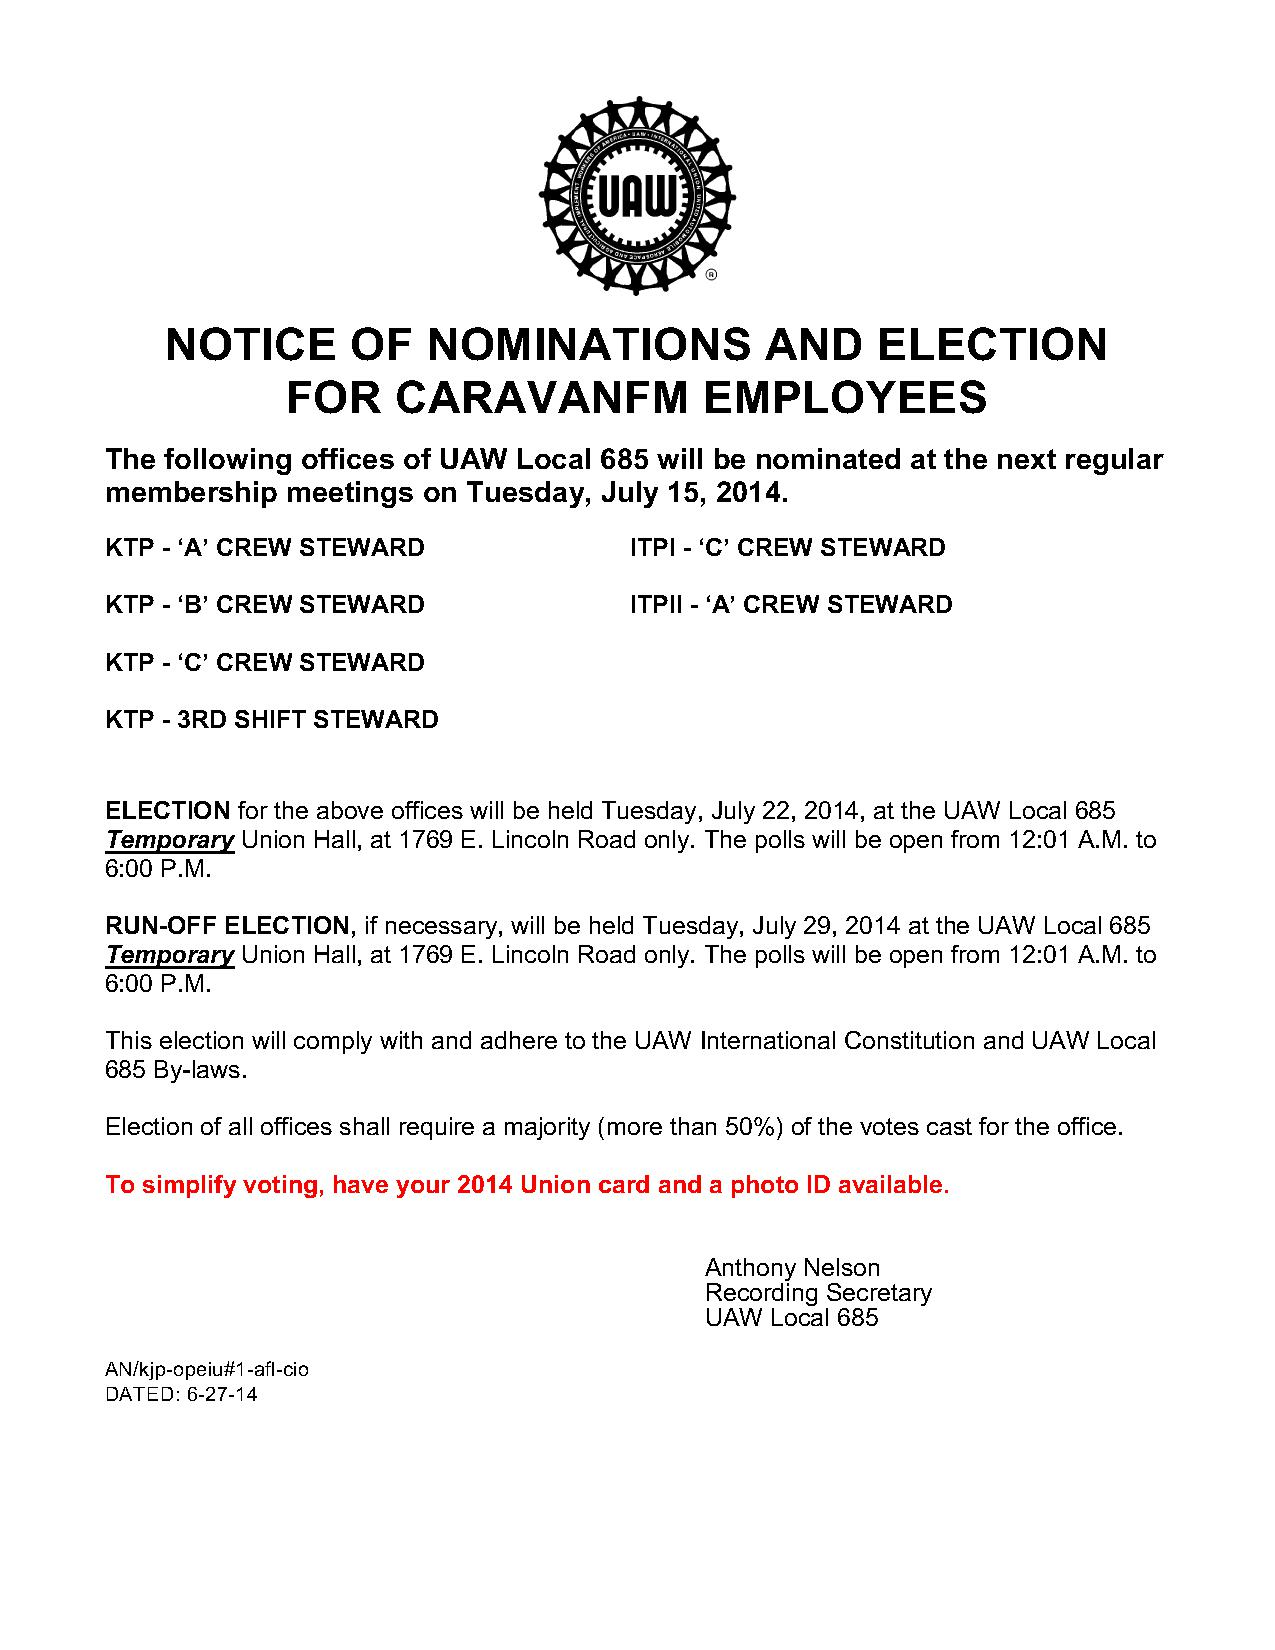 7-15-15 Caravan Knights Nominations and Election Notice_1